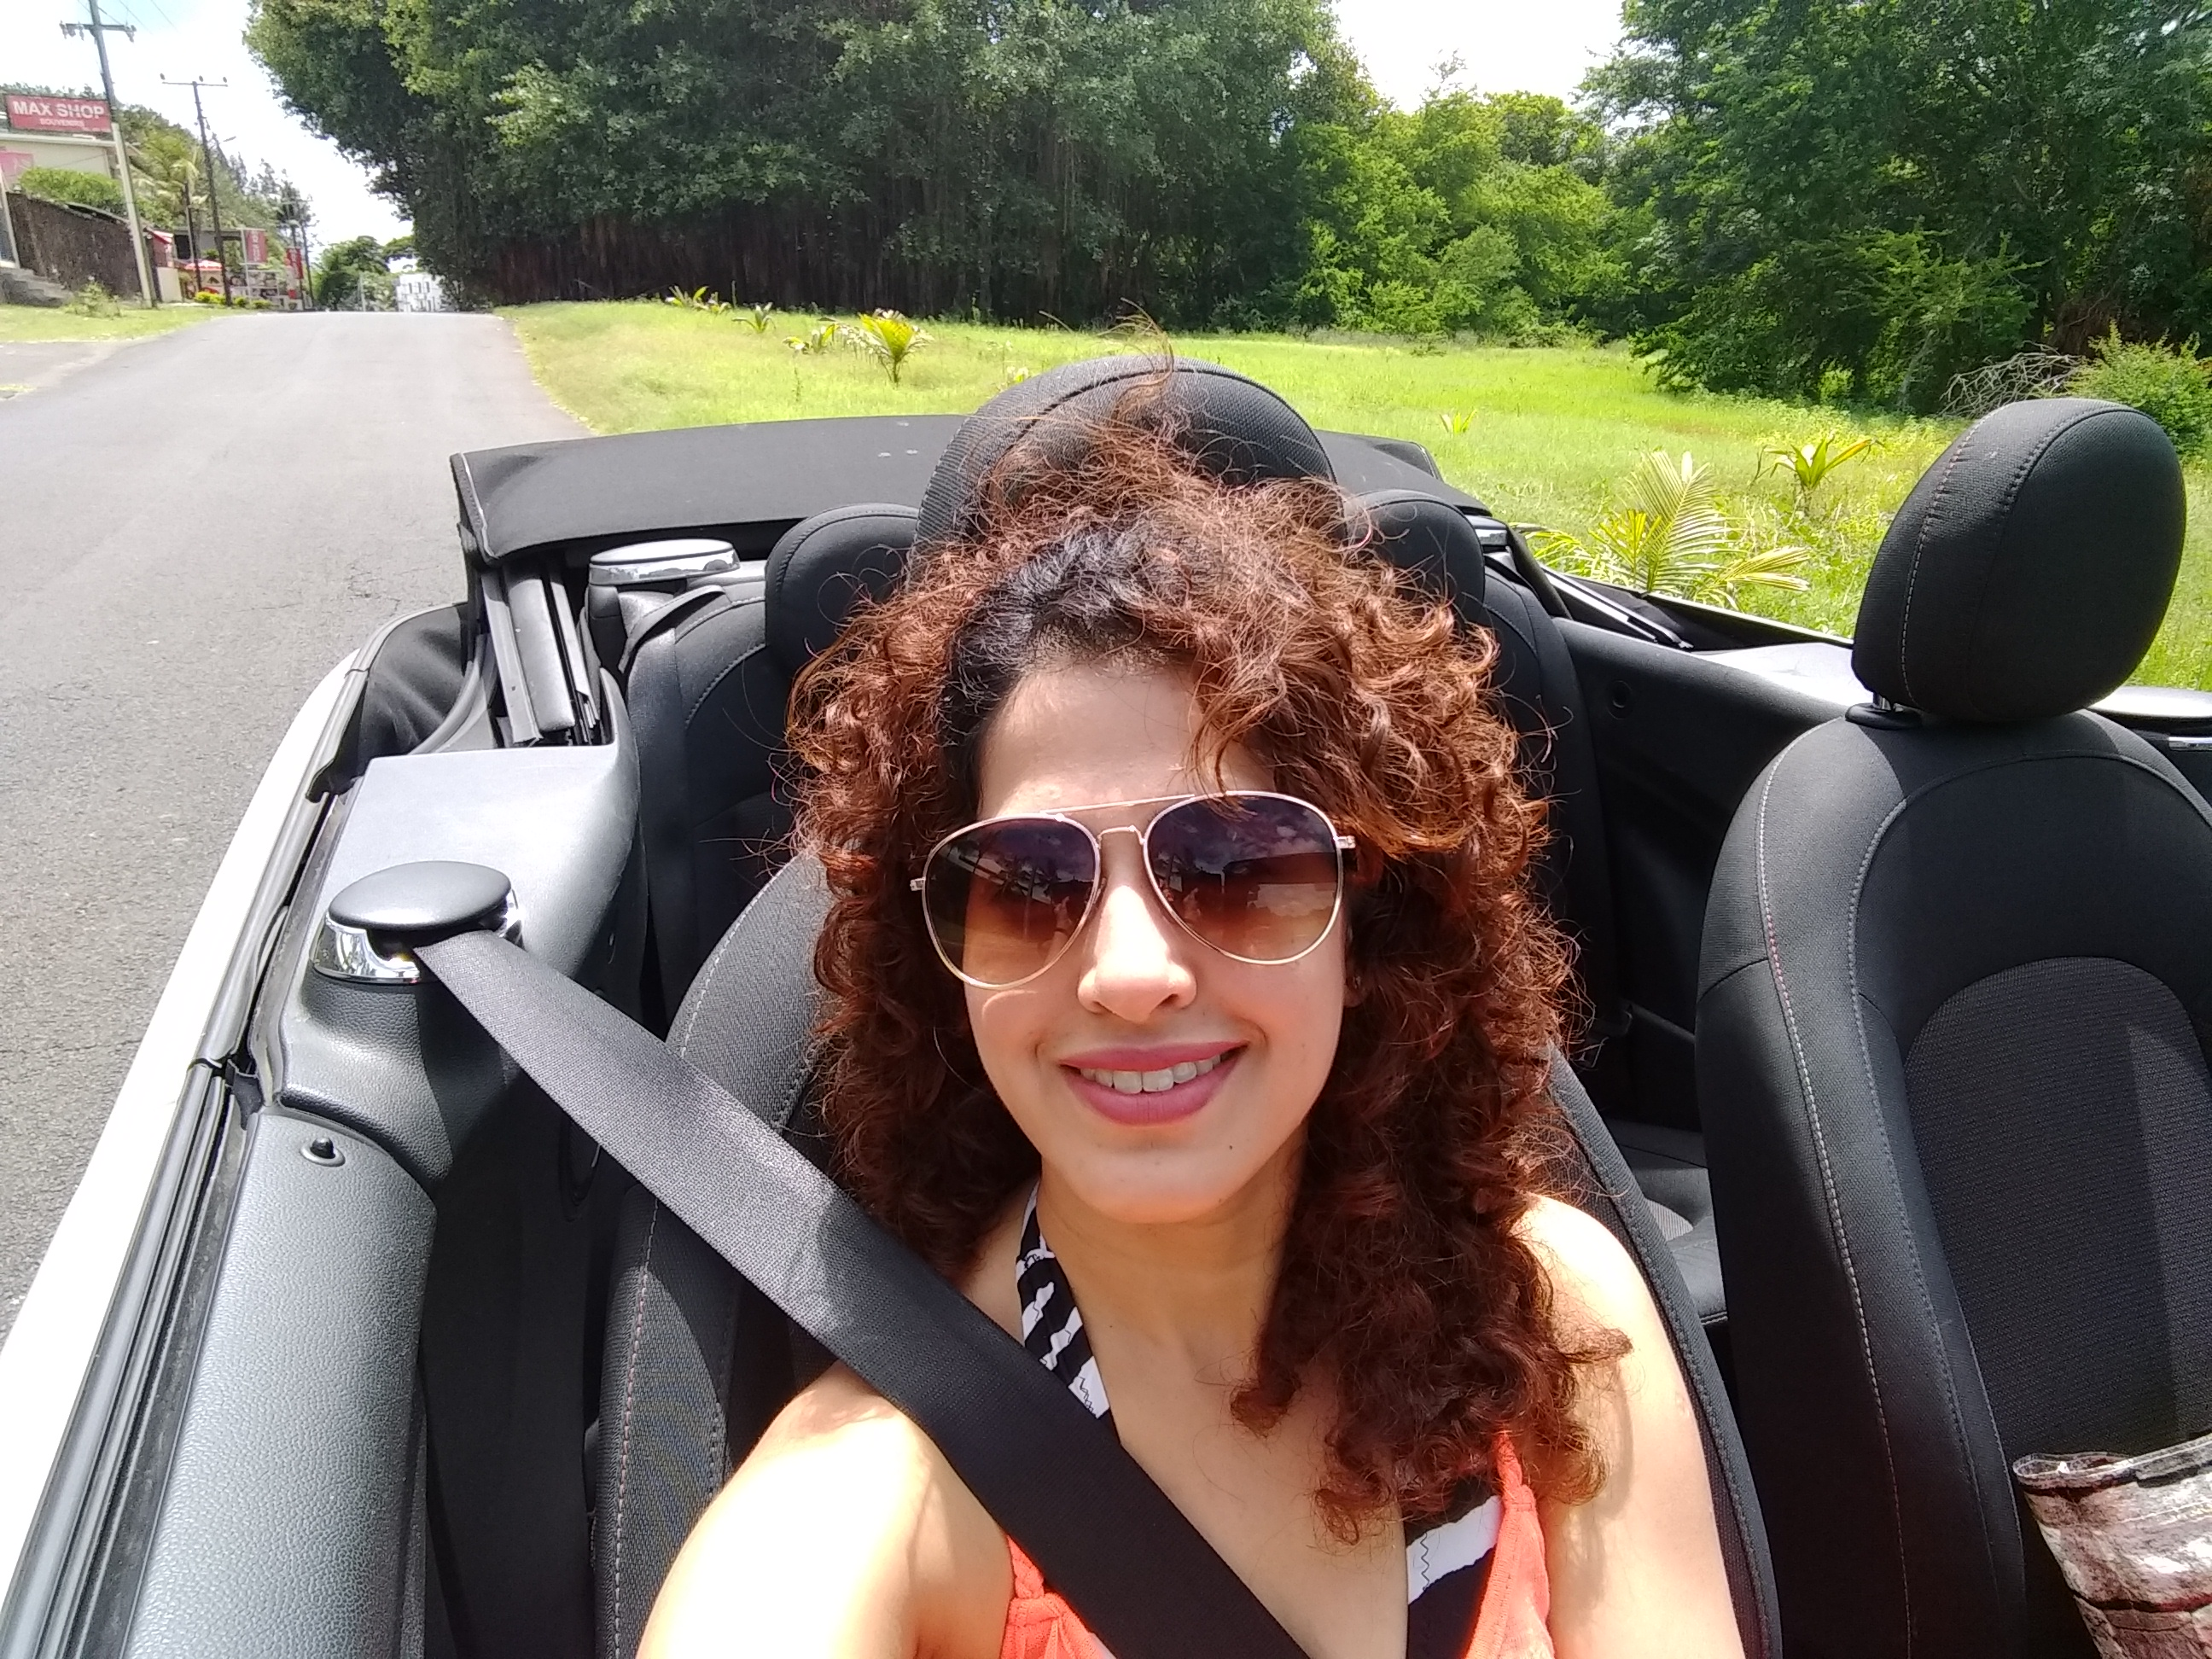 Driving around in Mauritius